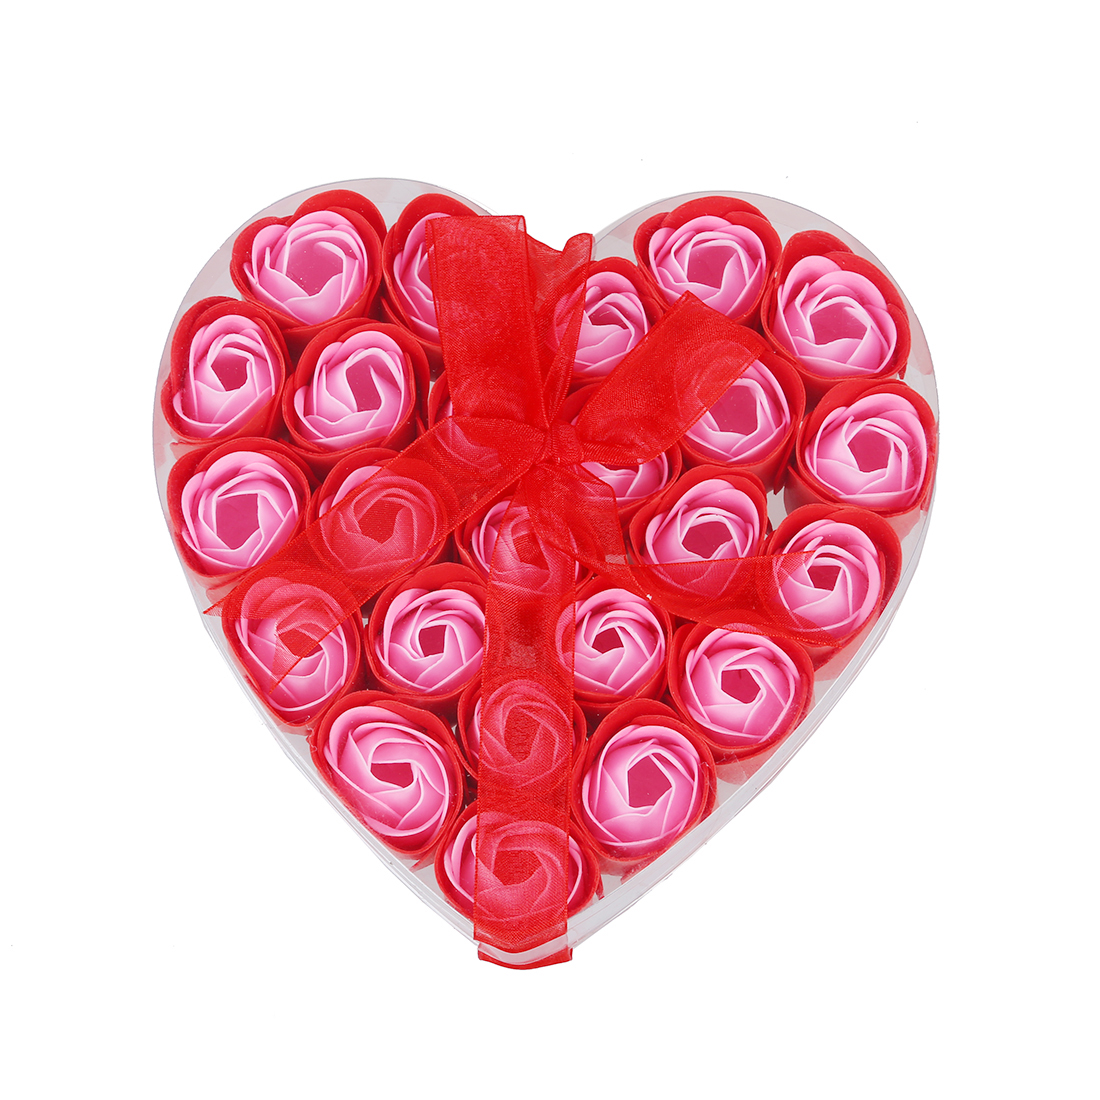 New 24 Pcs Red Scented Bath Soap Rose Petal In Heart Box